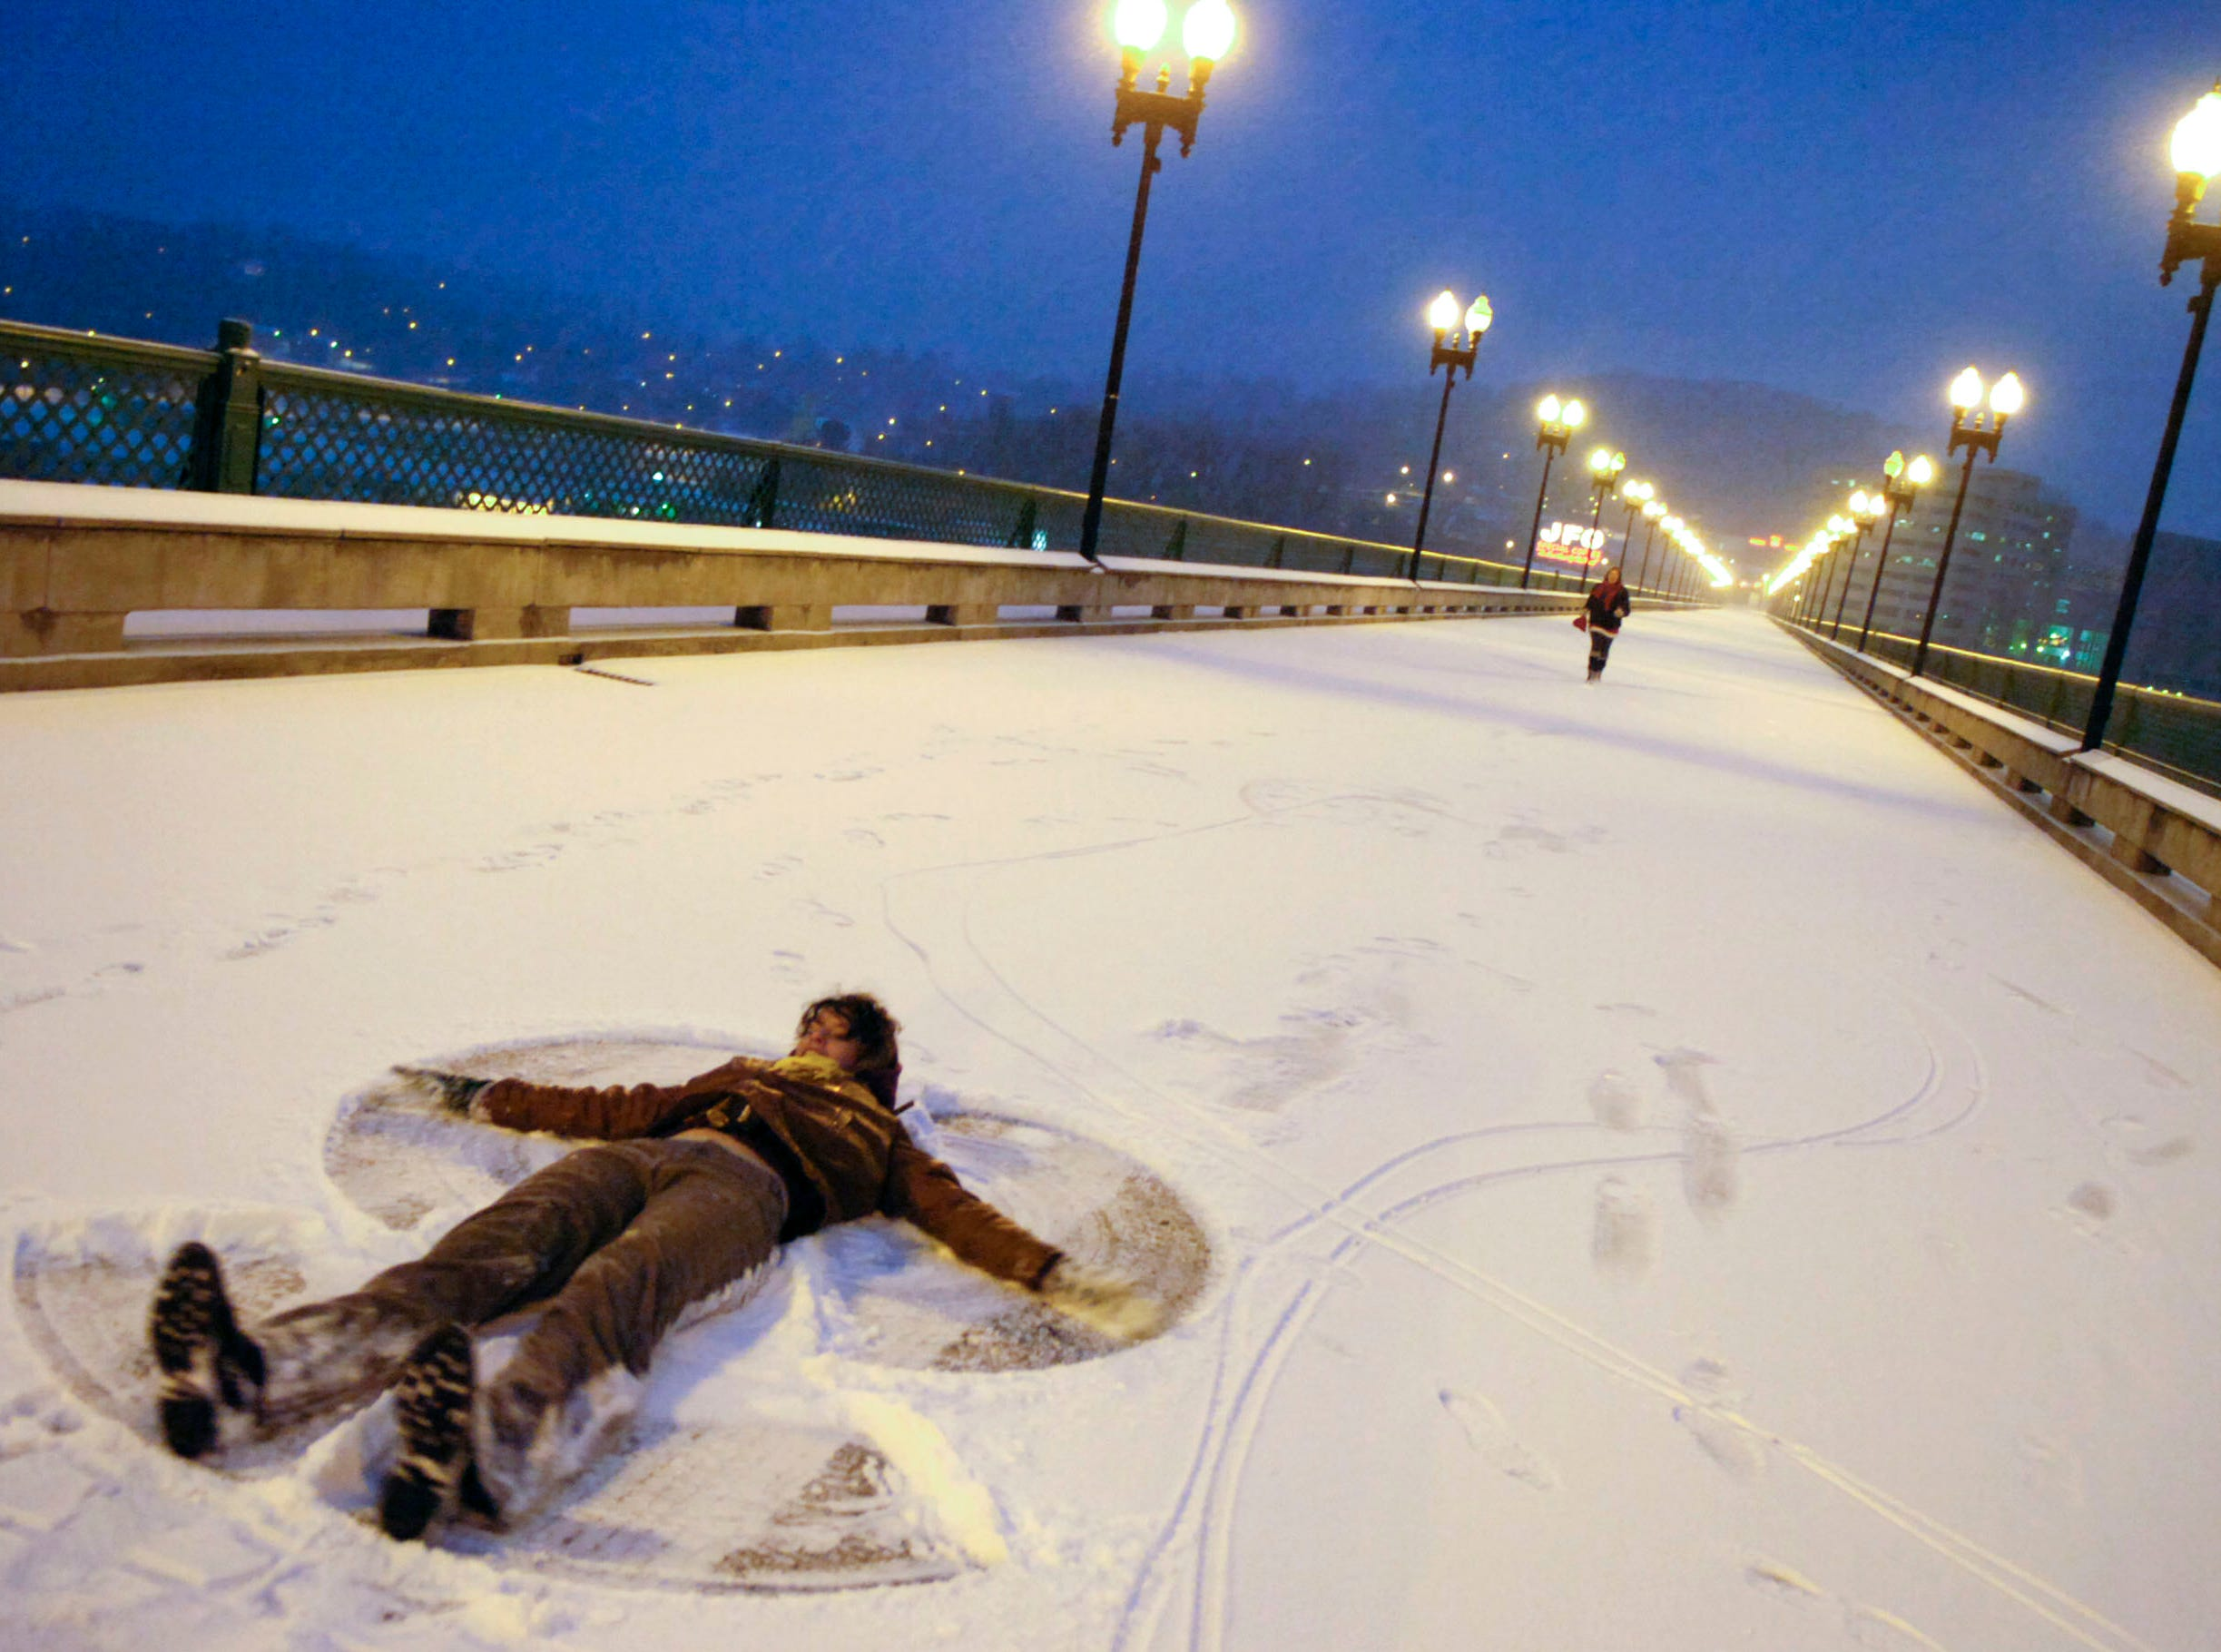 "Katherine Campbell makes a snow angel lying in the middle of the Gay Street Bridge as her friend Heather Nijoli runs toward her in downtown Knoxville on Thursday, Jan. 7, 2010. ""It's so cool, I love the city and I love what it looks like in the snow."" says Nijoli. The friends met on the bridge, which was closed to traffic due to weather conditions, to enjoy the snow."